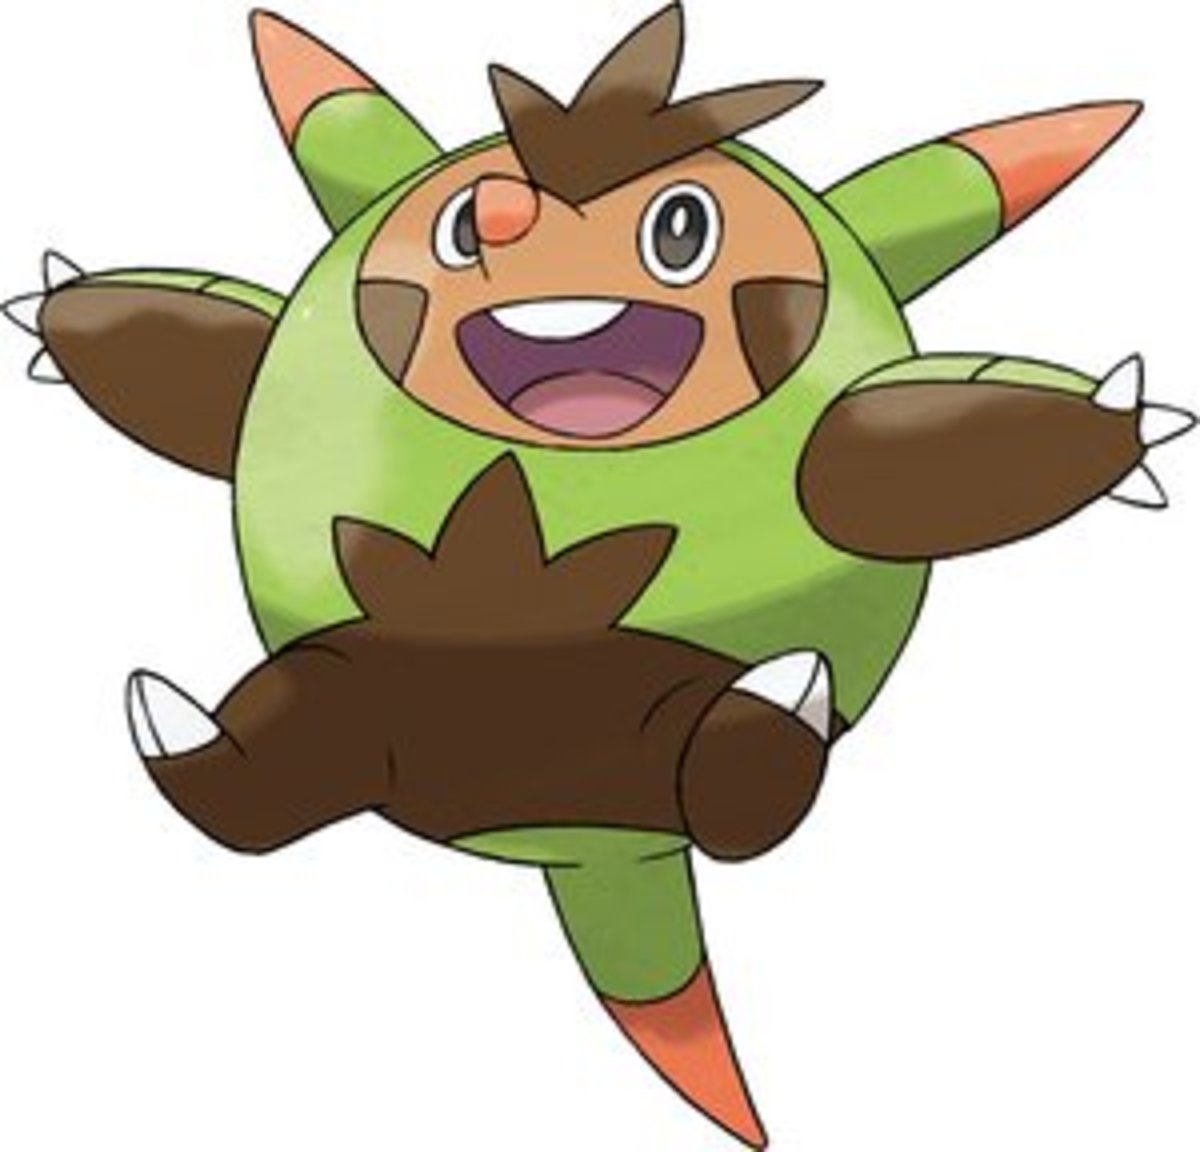 The Grass type Starter, Quilladin